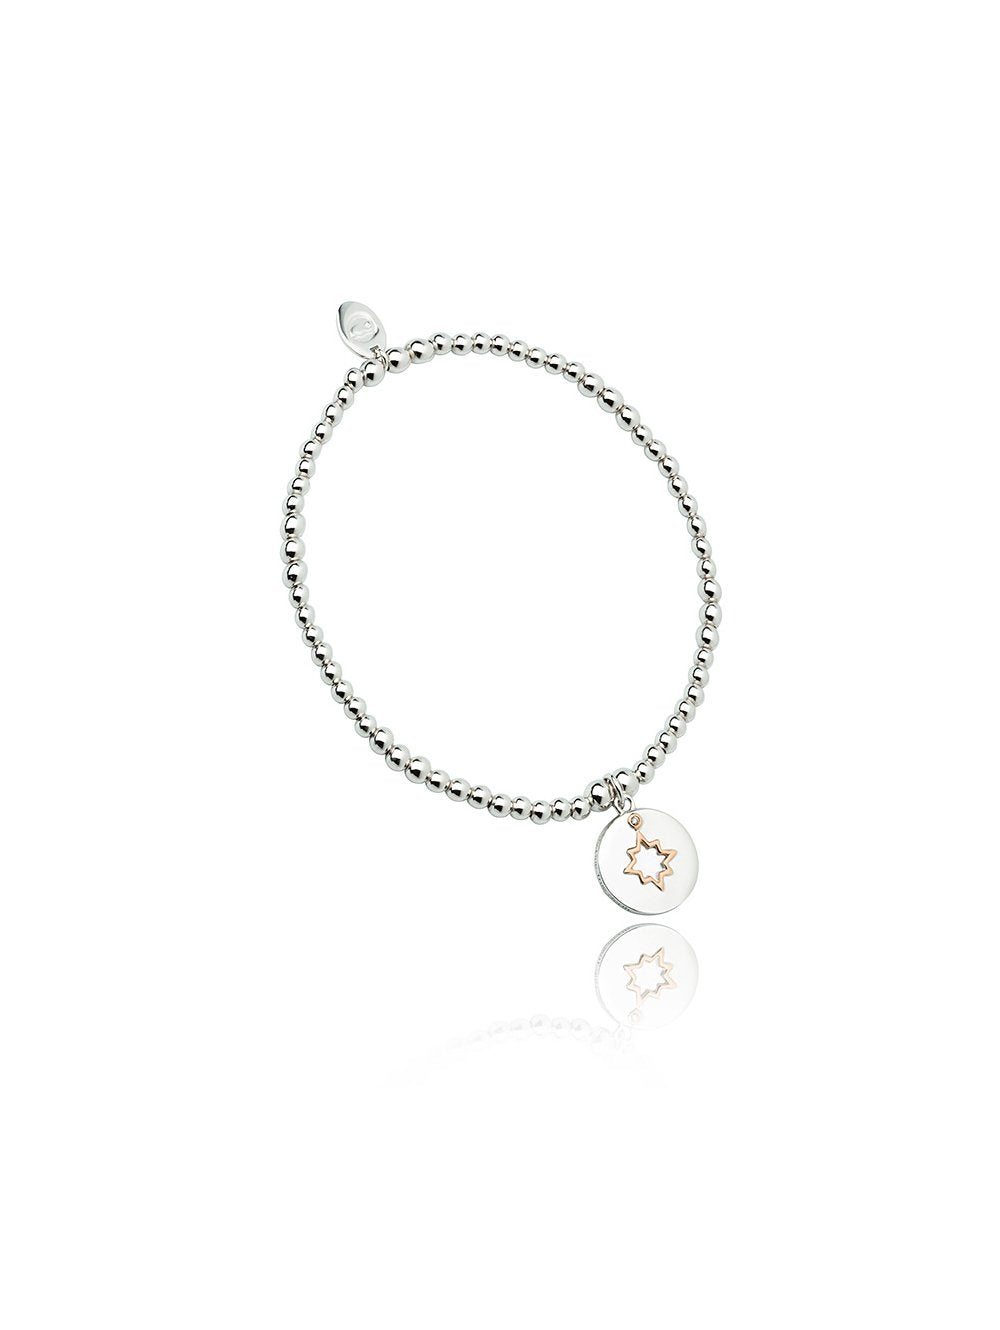 Clogau My True North Affinity Beaded Bracelet 16-16.5cm 3SBB65S